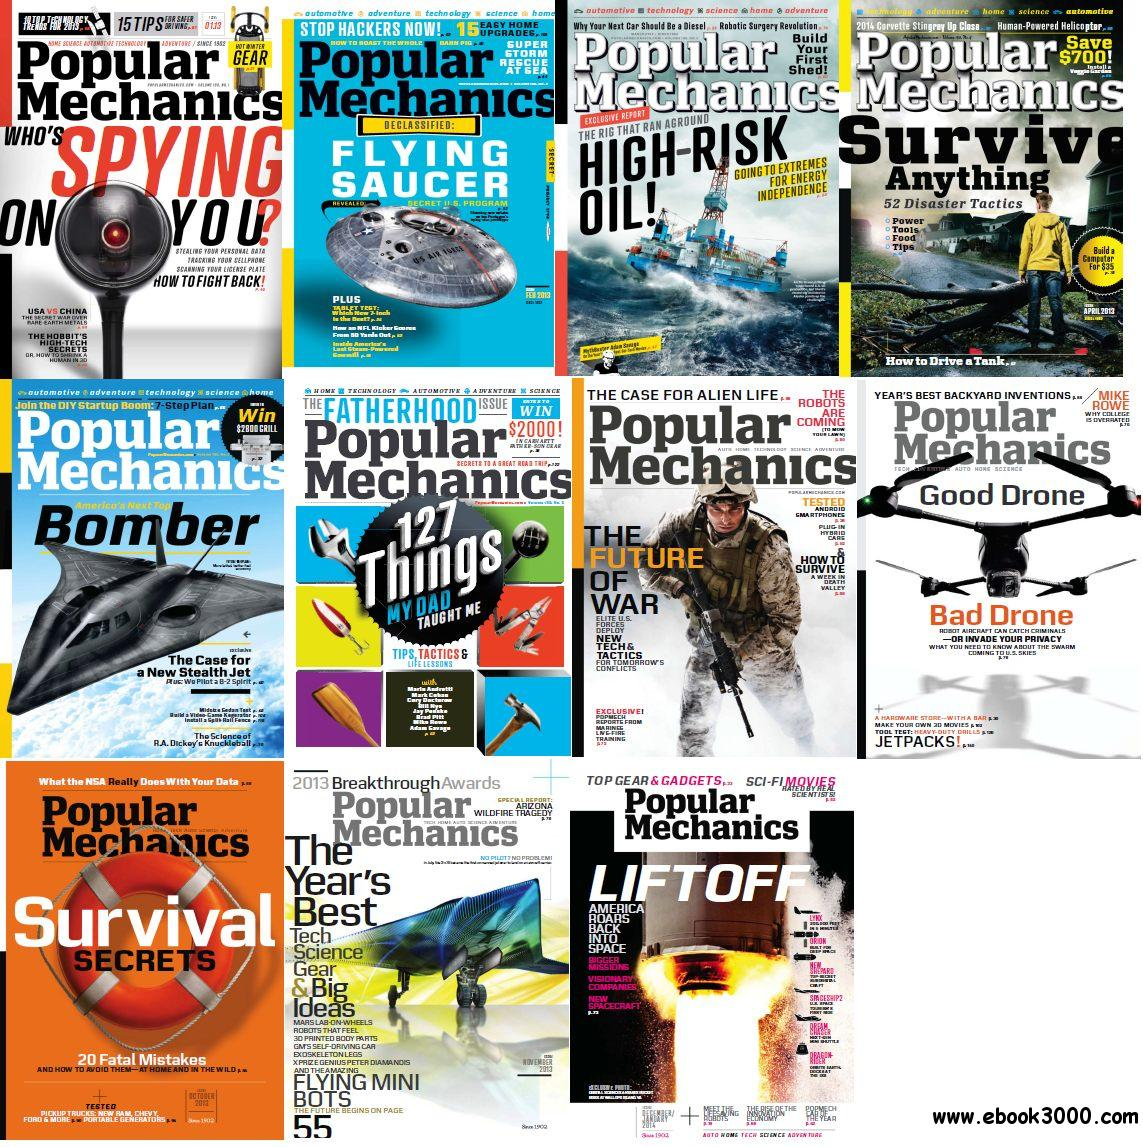 Popular Mechanics USA - Full Year 2013 Issues Collection free download